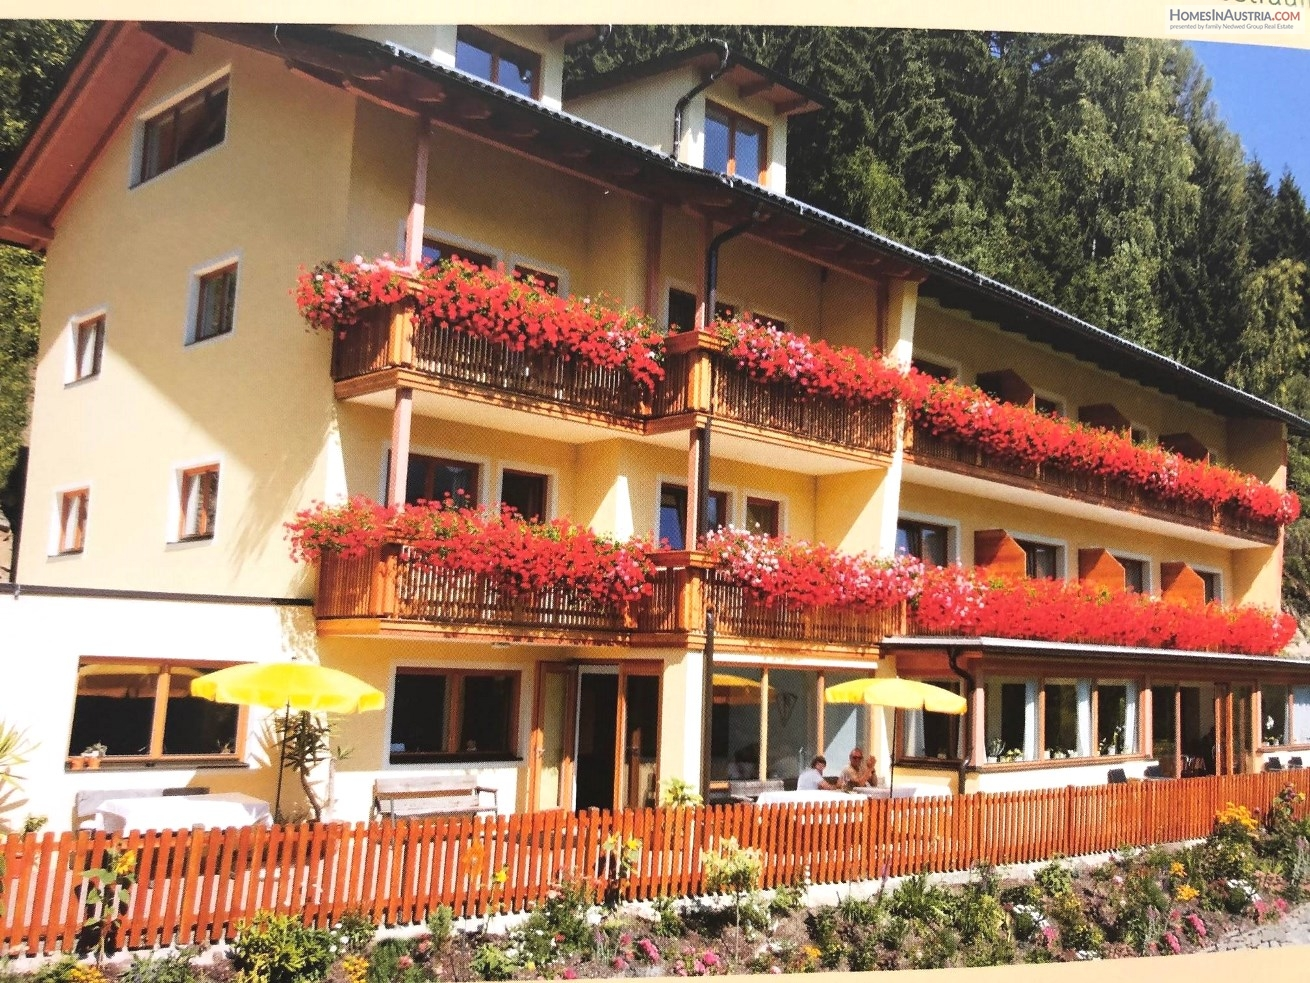 Bad Kleinkirchheim, Carinthia, 3star Hotel with 30 beds in fantastic sunny location